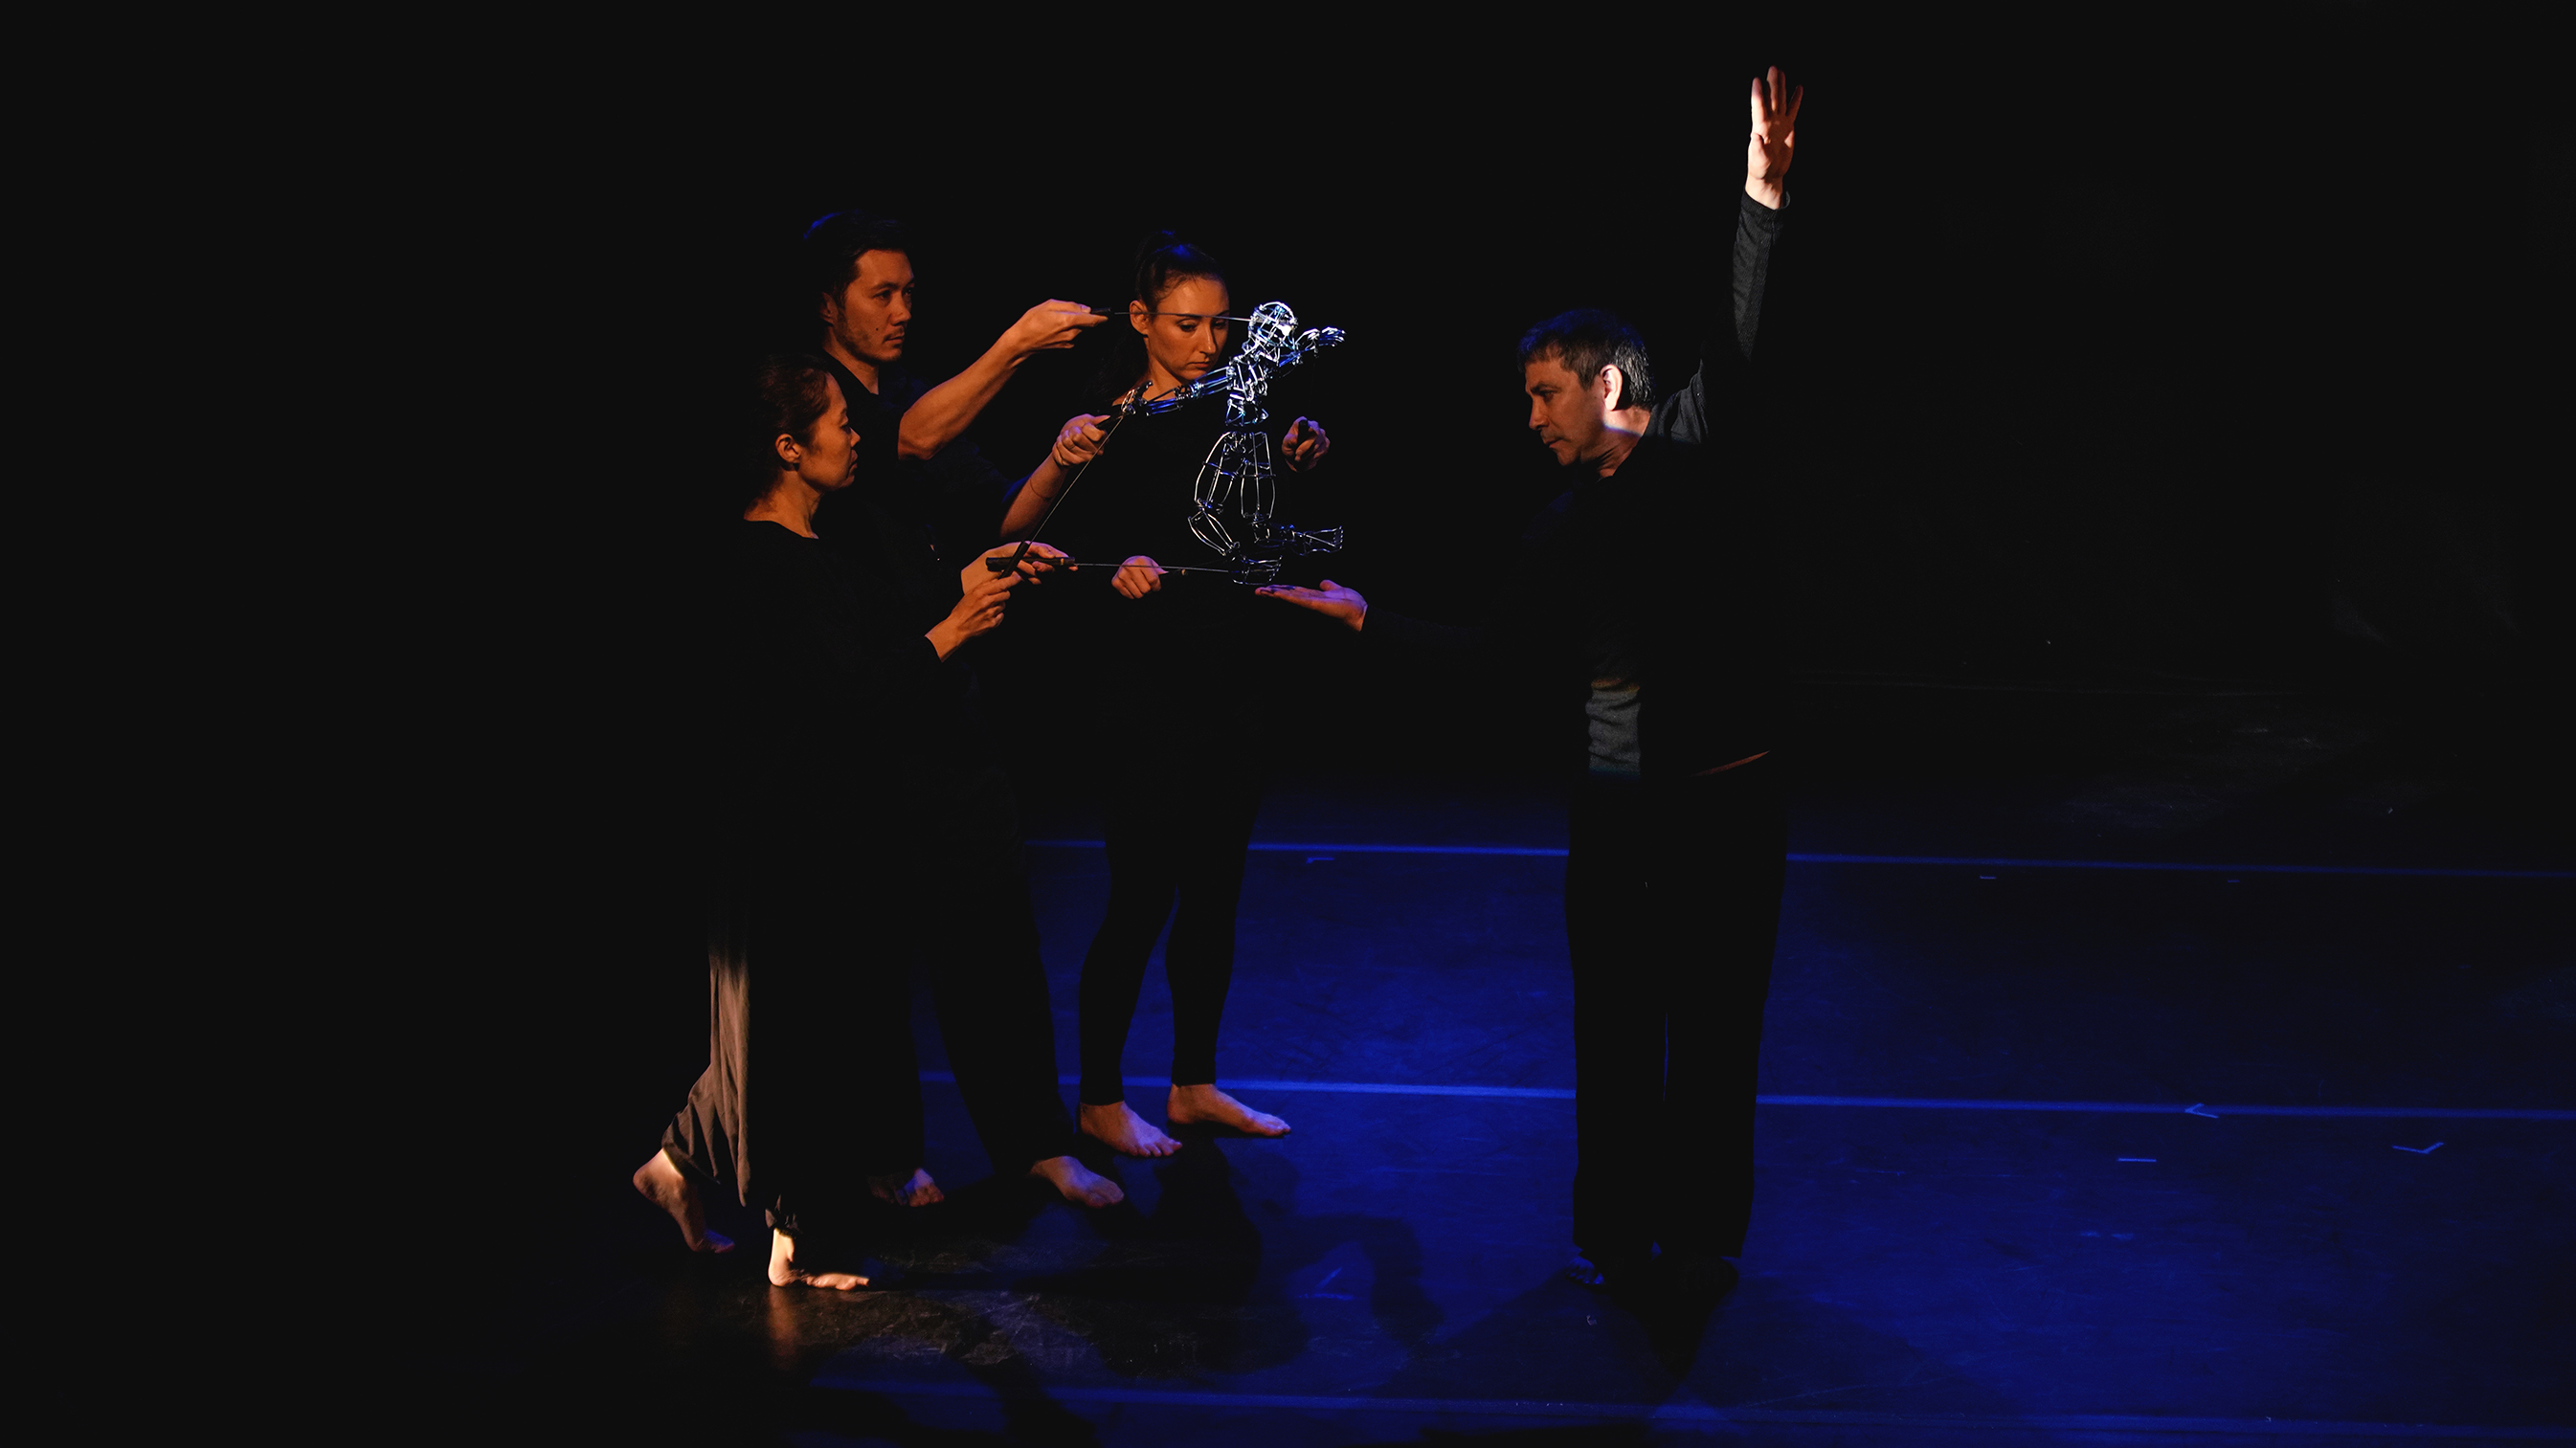 Photo of puppeteers performing on stage from Loco7 Dance Puppet Theatre